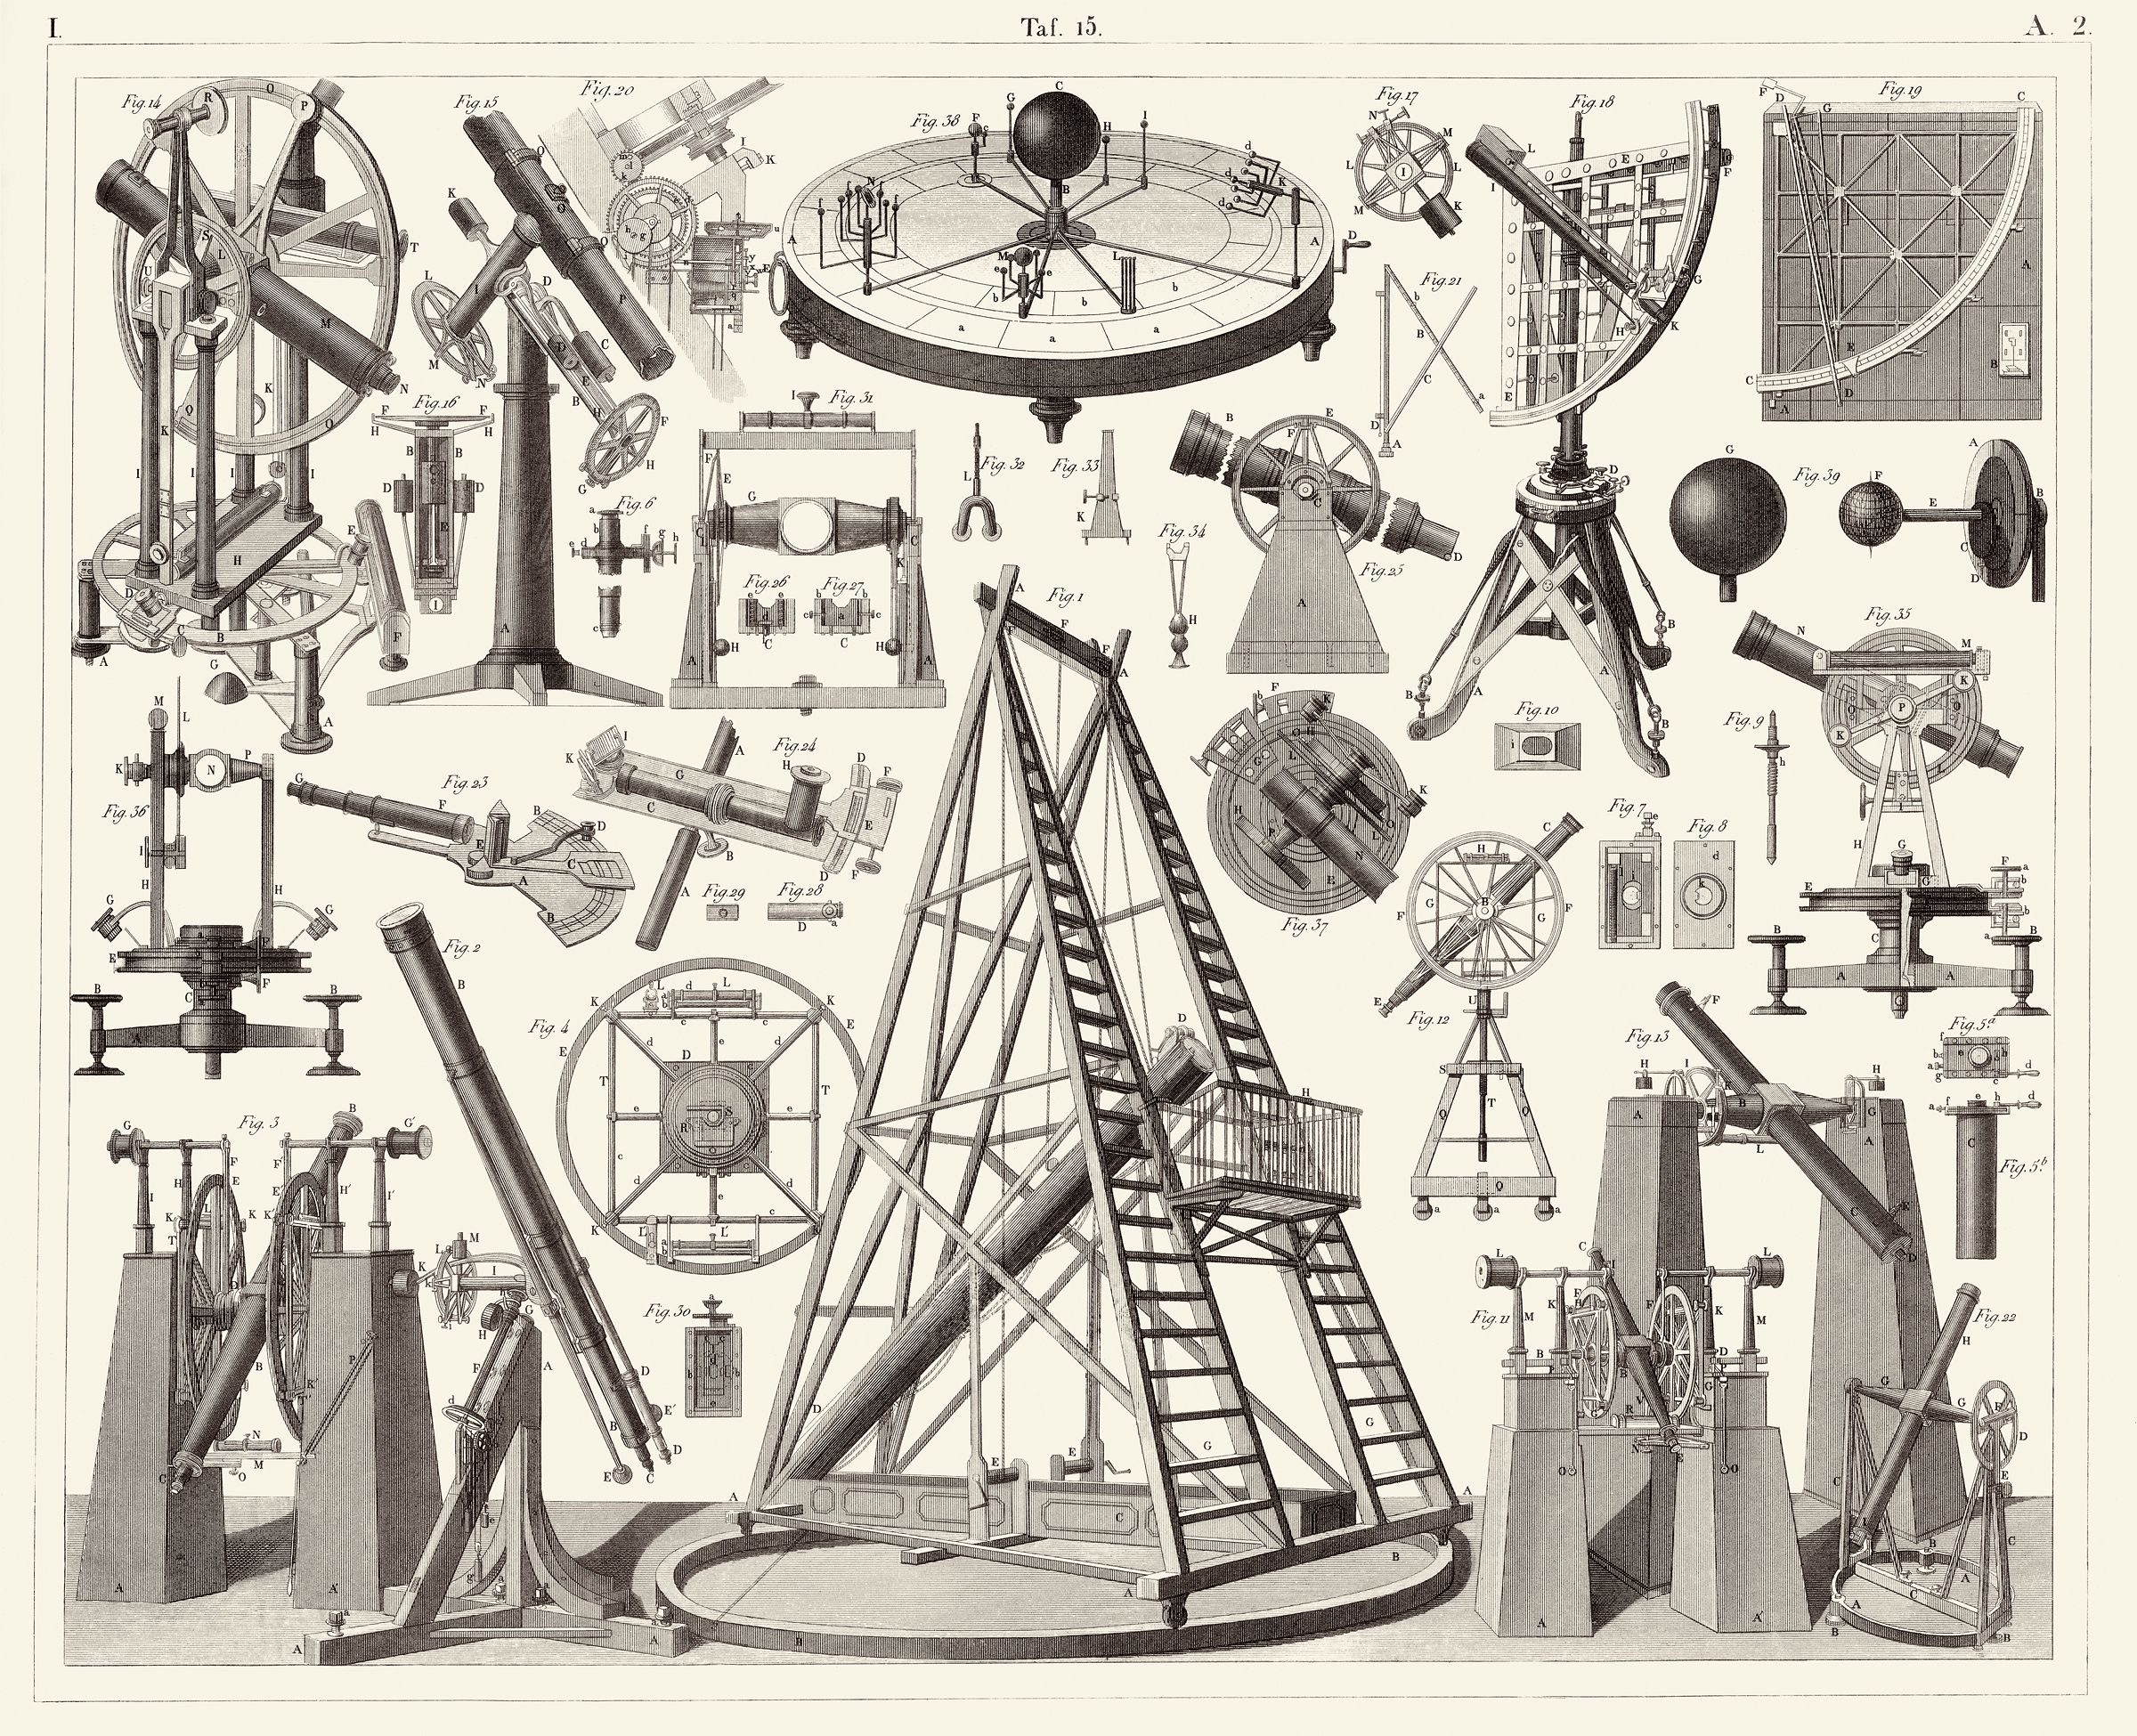 Innovation and Technology in the 19th Century